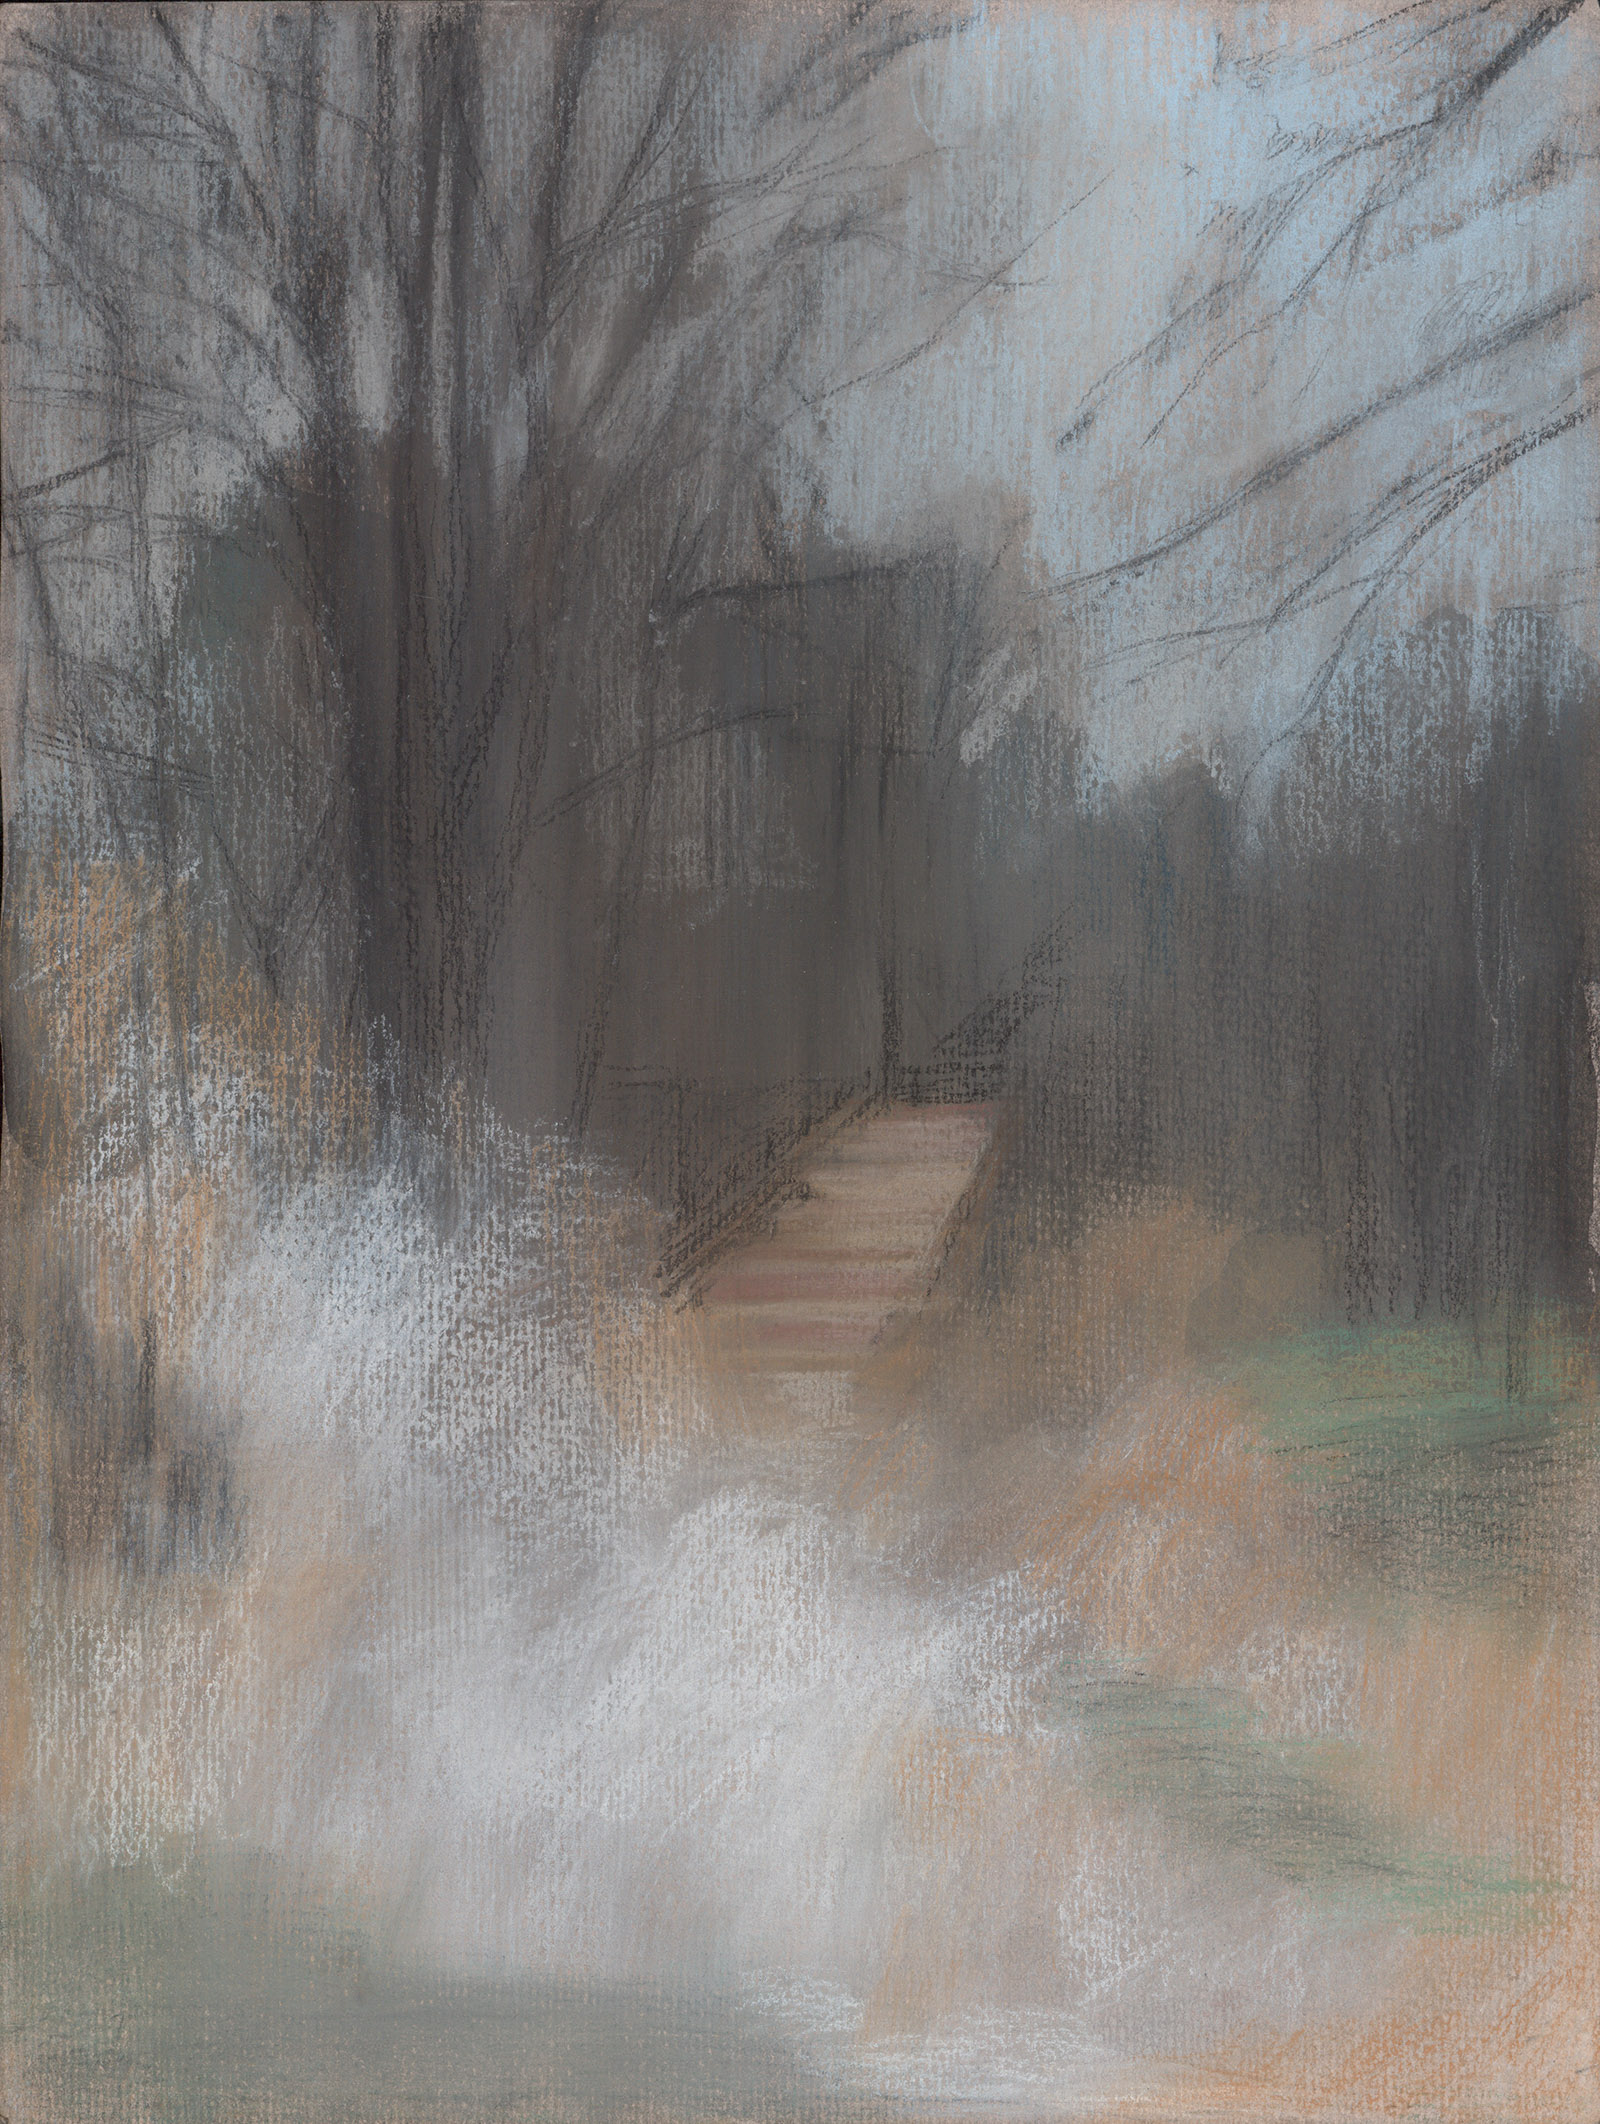 Winterscape 4-17. Ink, pastel, paper. 32x24cm. 2012